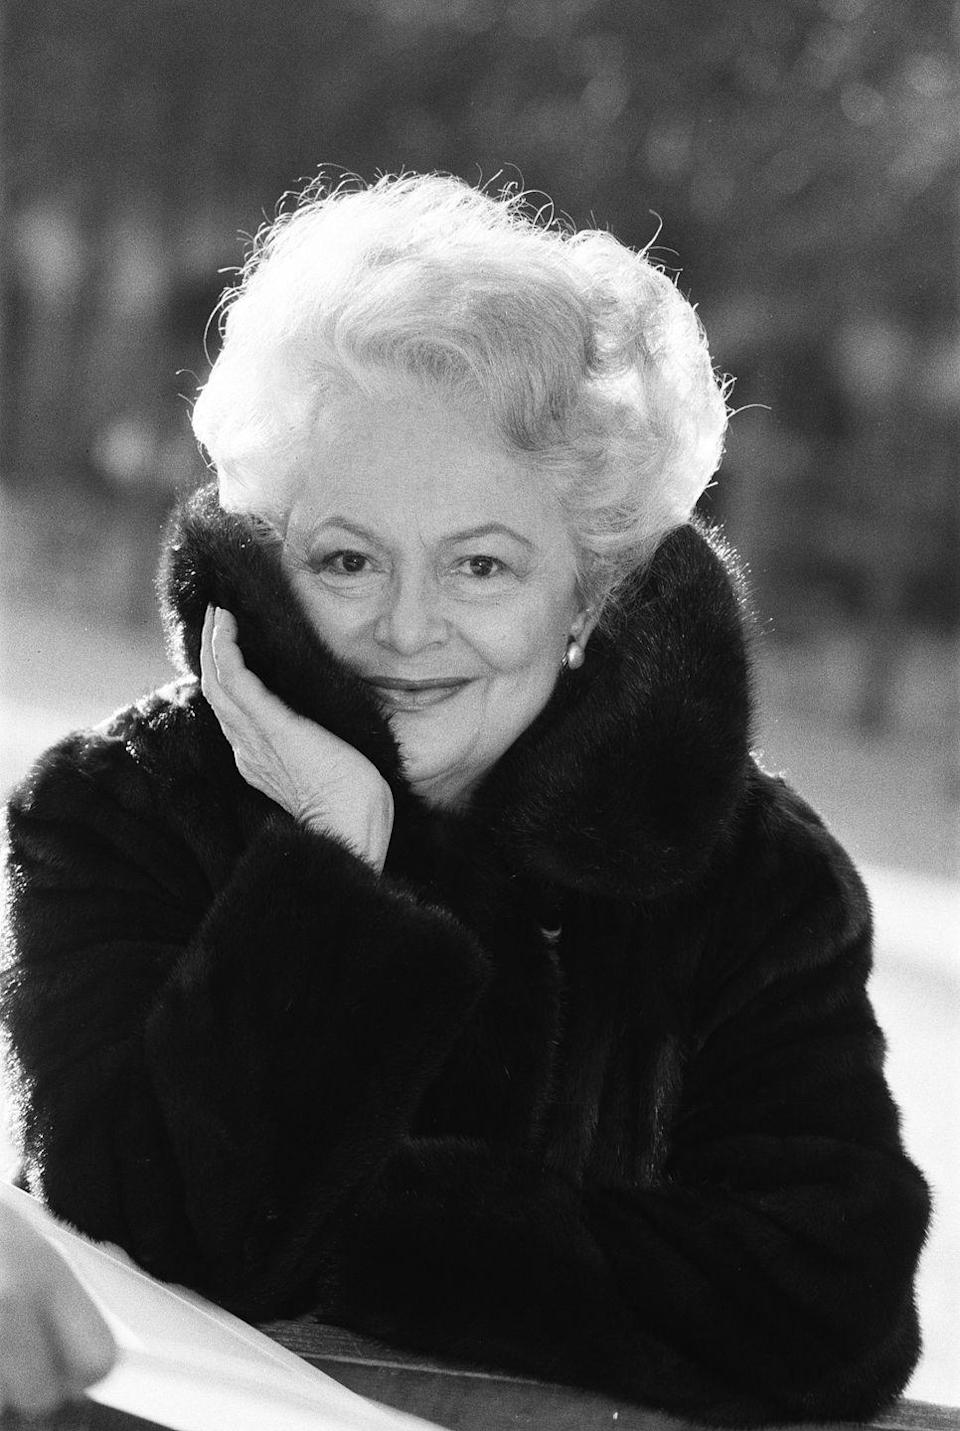 <p>In 1987, she was captured in a fur coat outside her Paris home. </p>